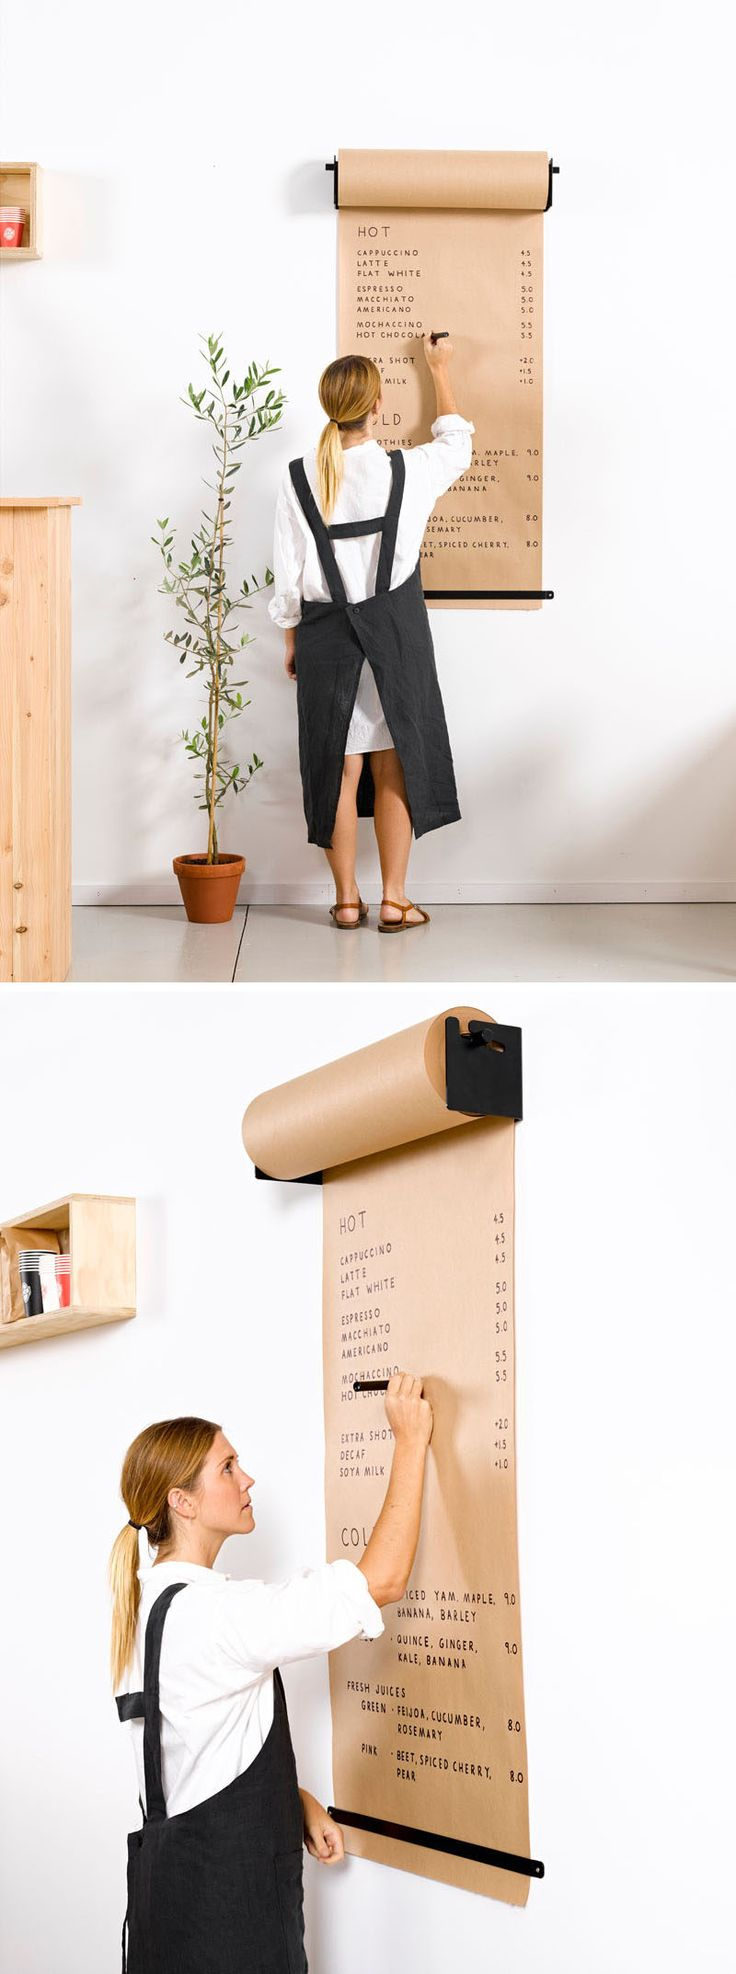 Wall Decor Idea - Install A Paper Roll Holder To Create A Fun Place To Write Lists Or Let Kids Draw